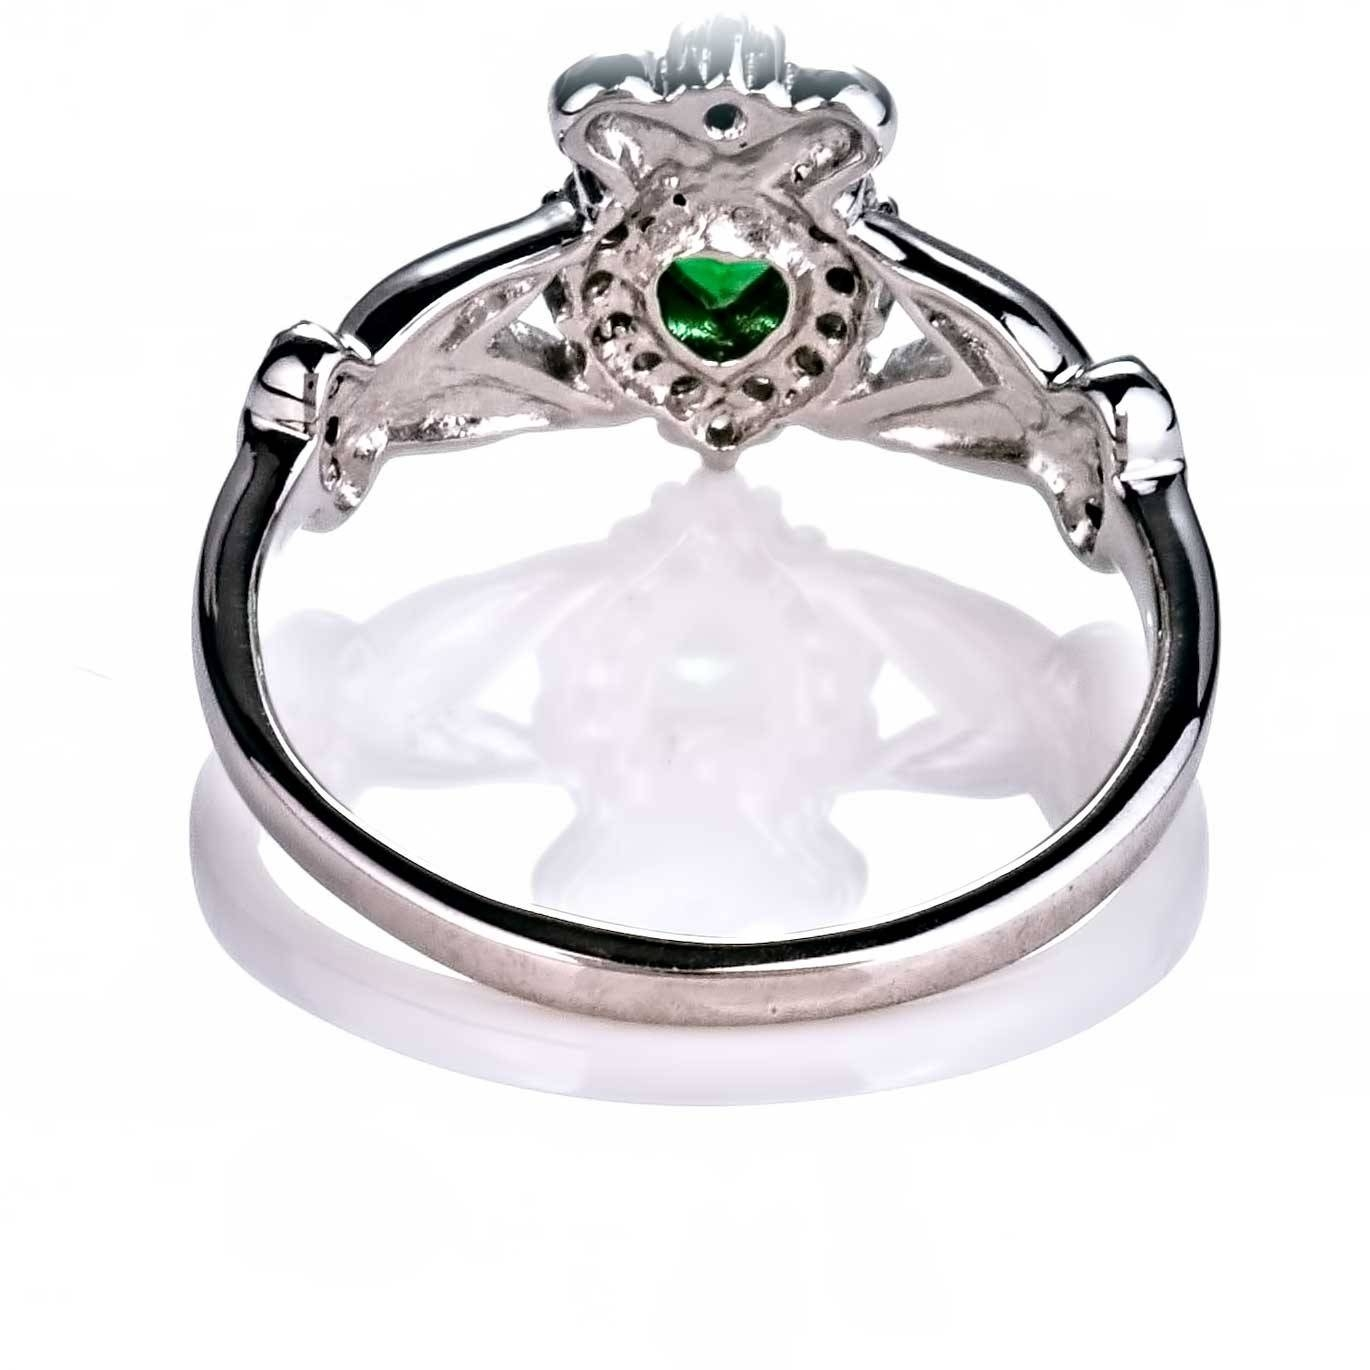 Ladies Emerald Diamond Silver Claddagh Ring – May Birthstone Intended For Emerald Claddagh Engagement Rings (View 12 of 15)